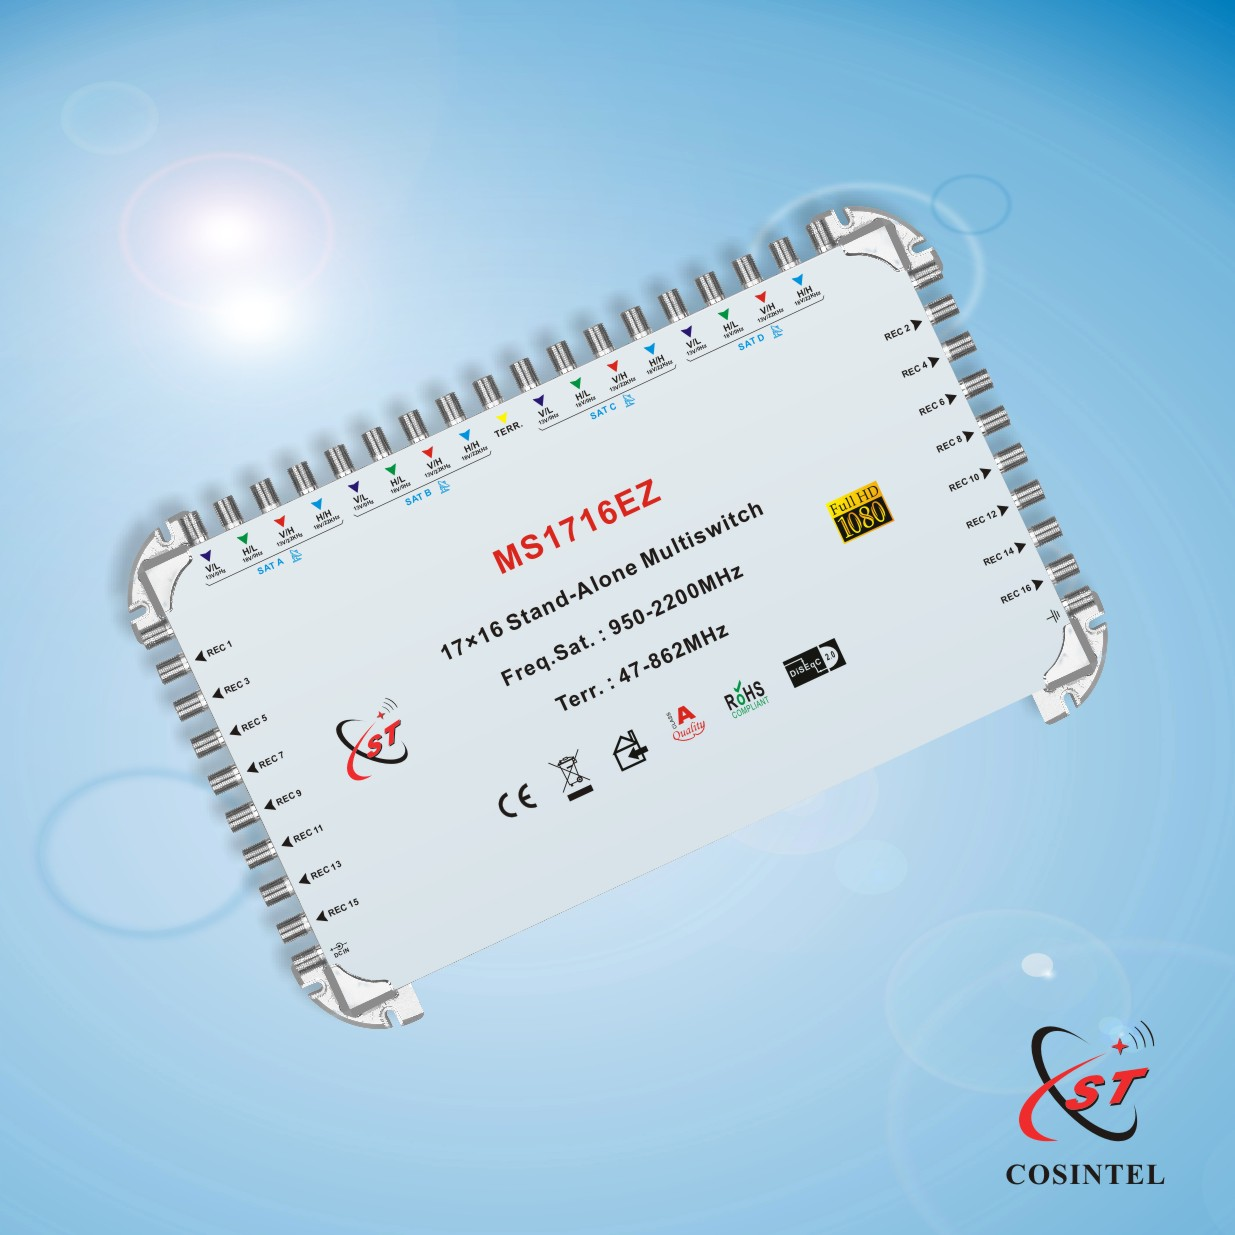 17 in 16 out Stand-alone Satellite Multiswitch with Zinc Die-casting Housing